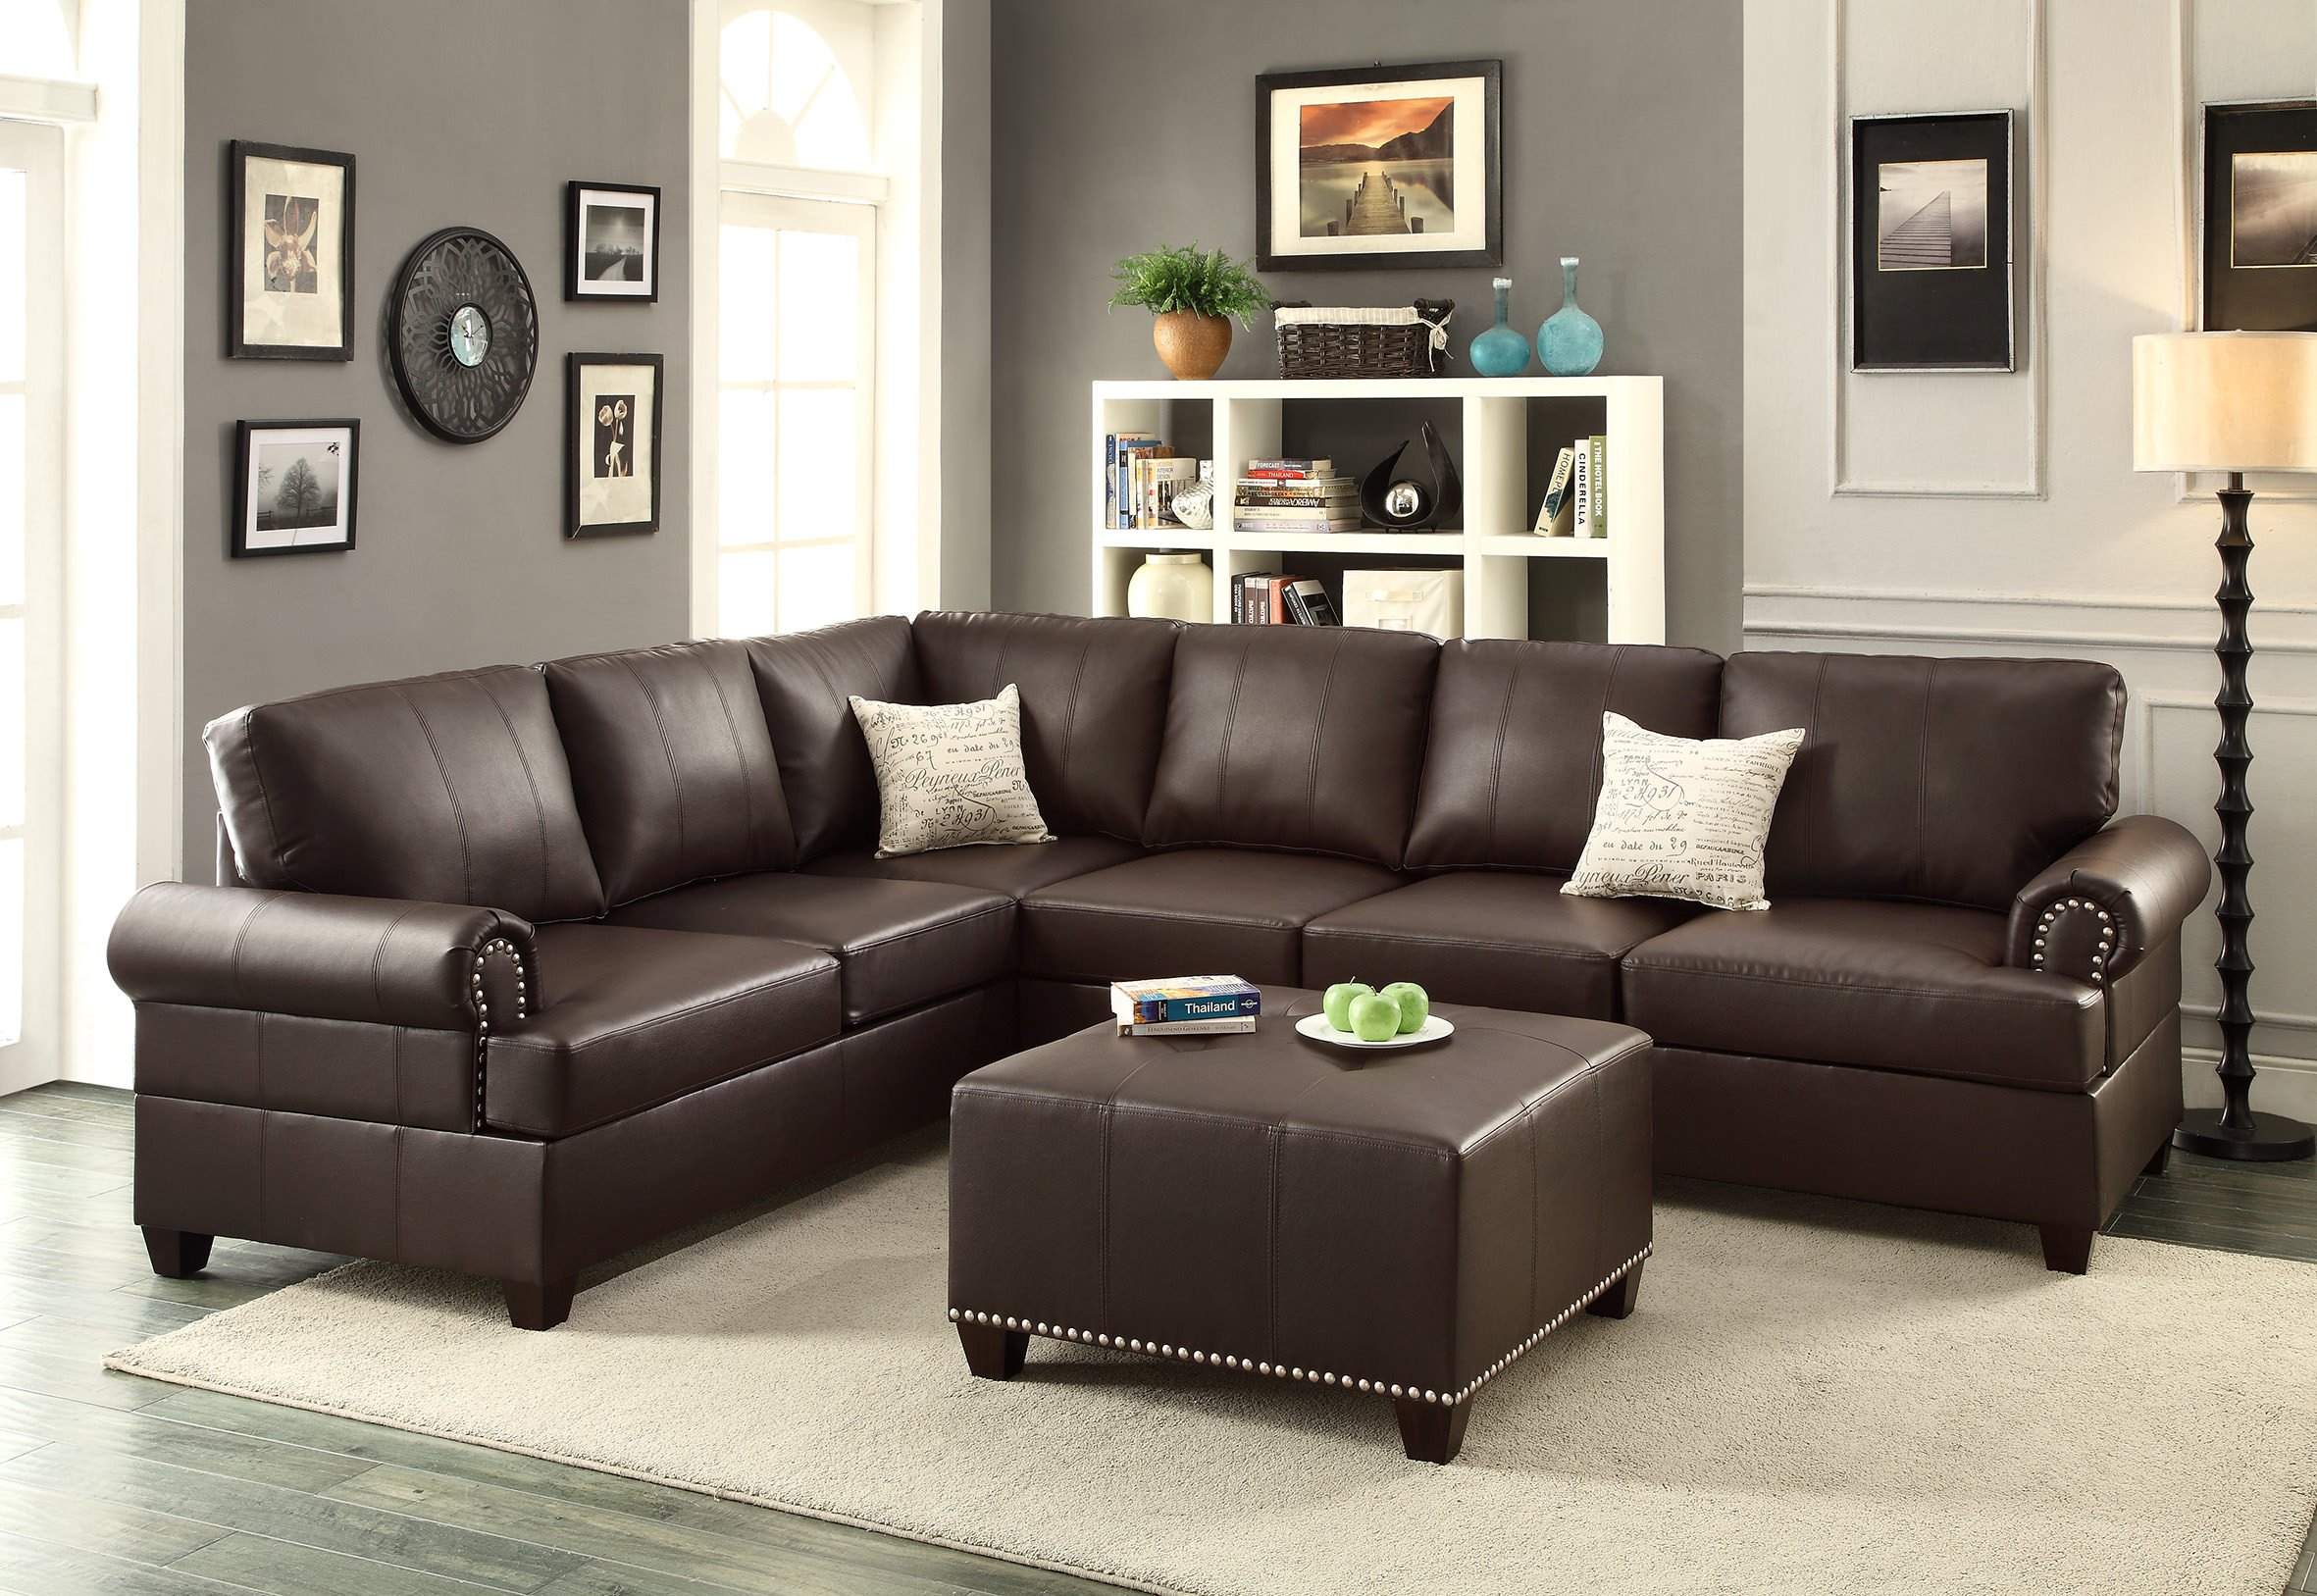 f7770 espresso 2 pcs sectional sofa by poundex With 2 pcs sectional sofa by poundex